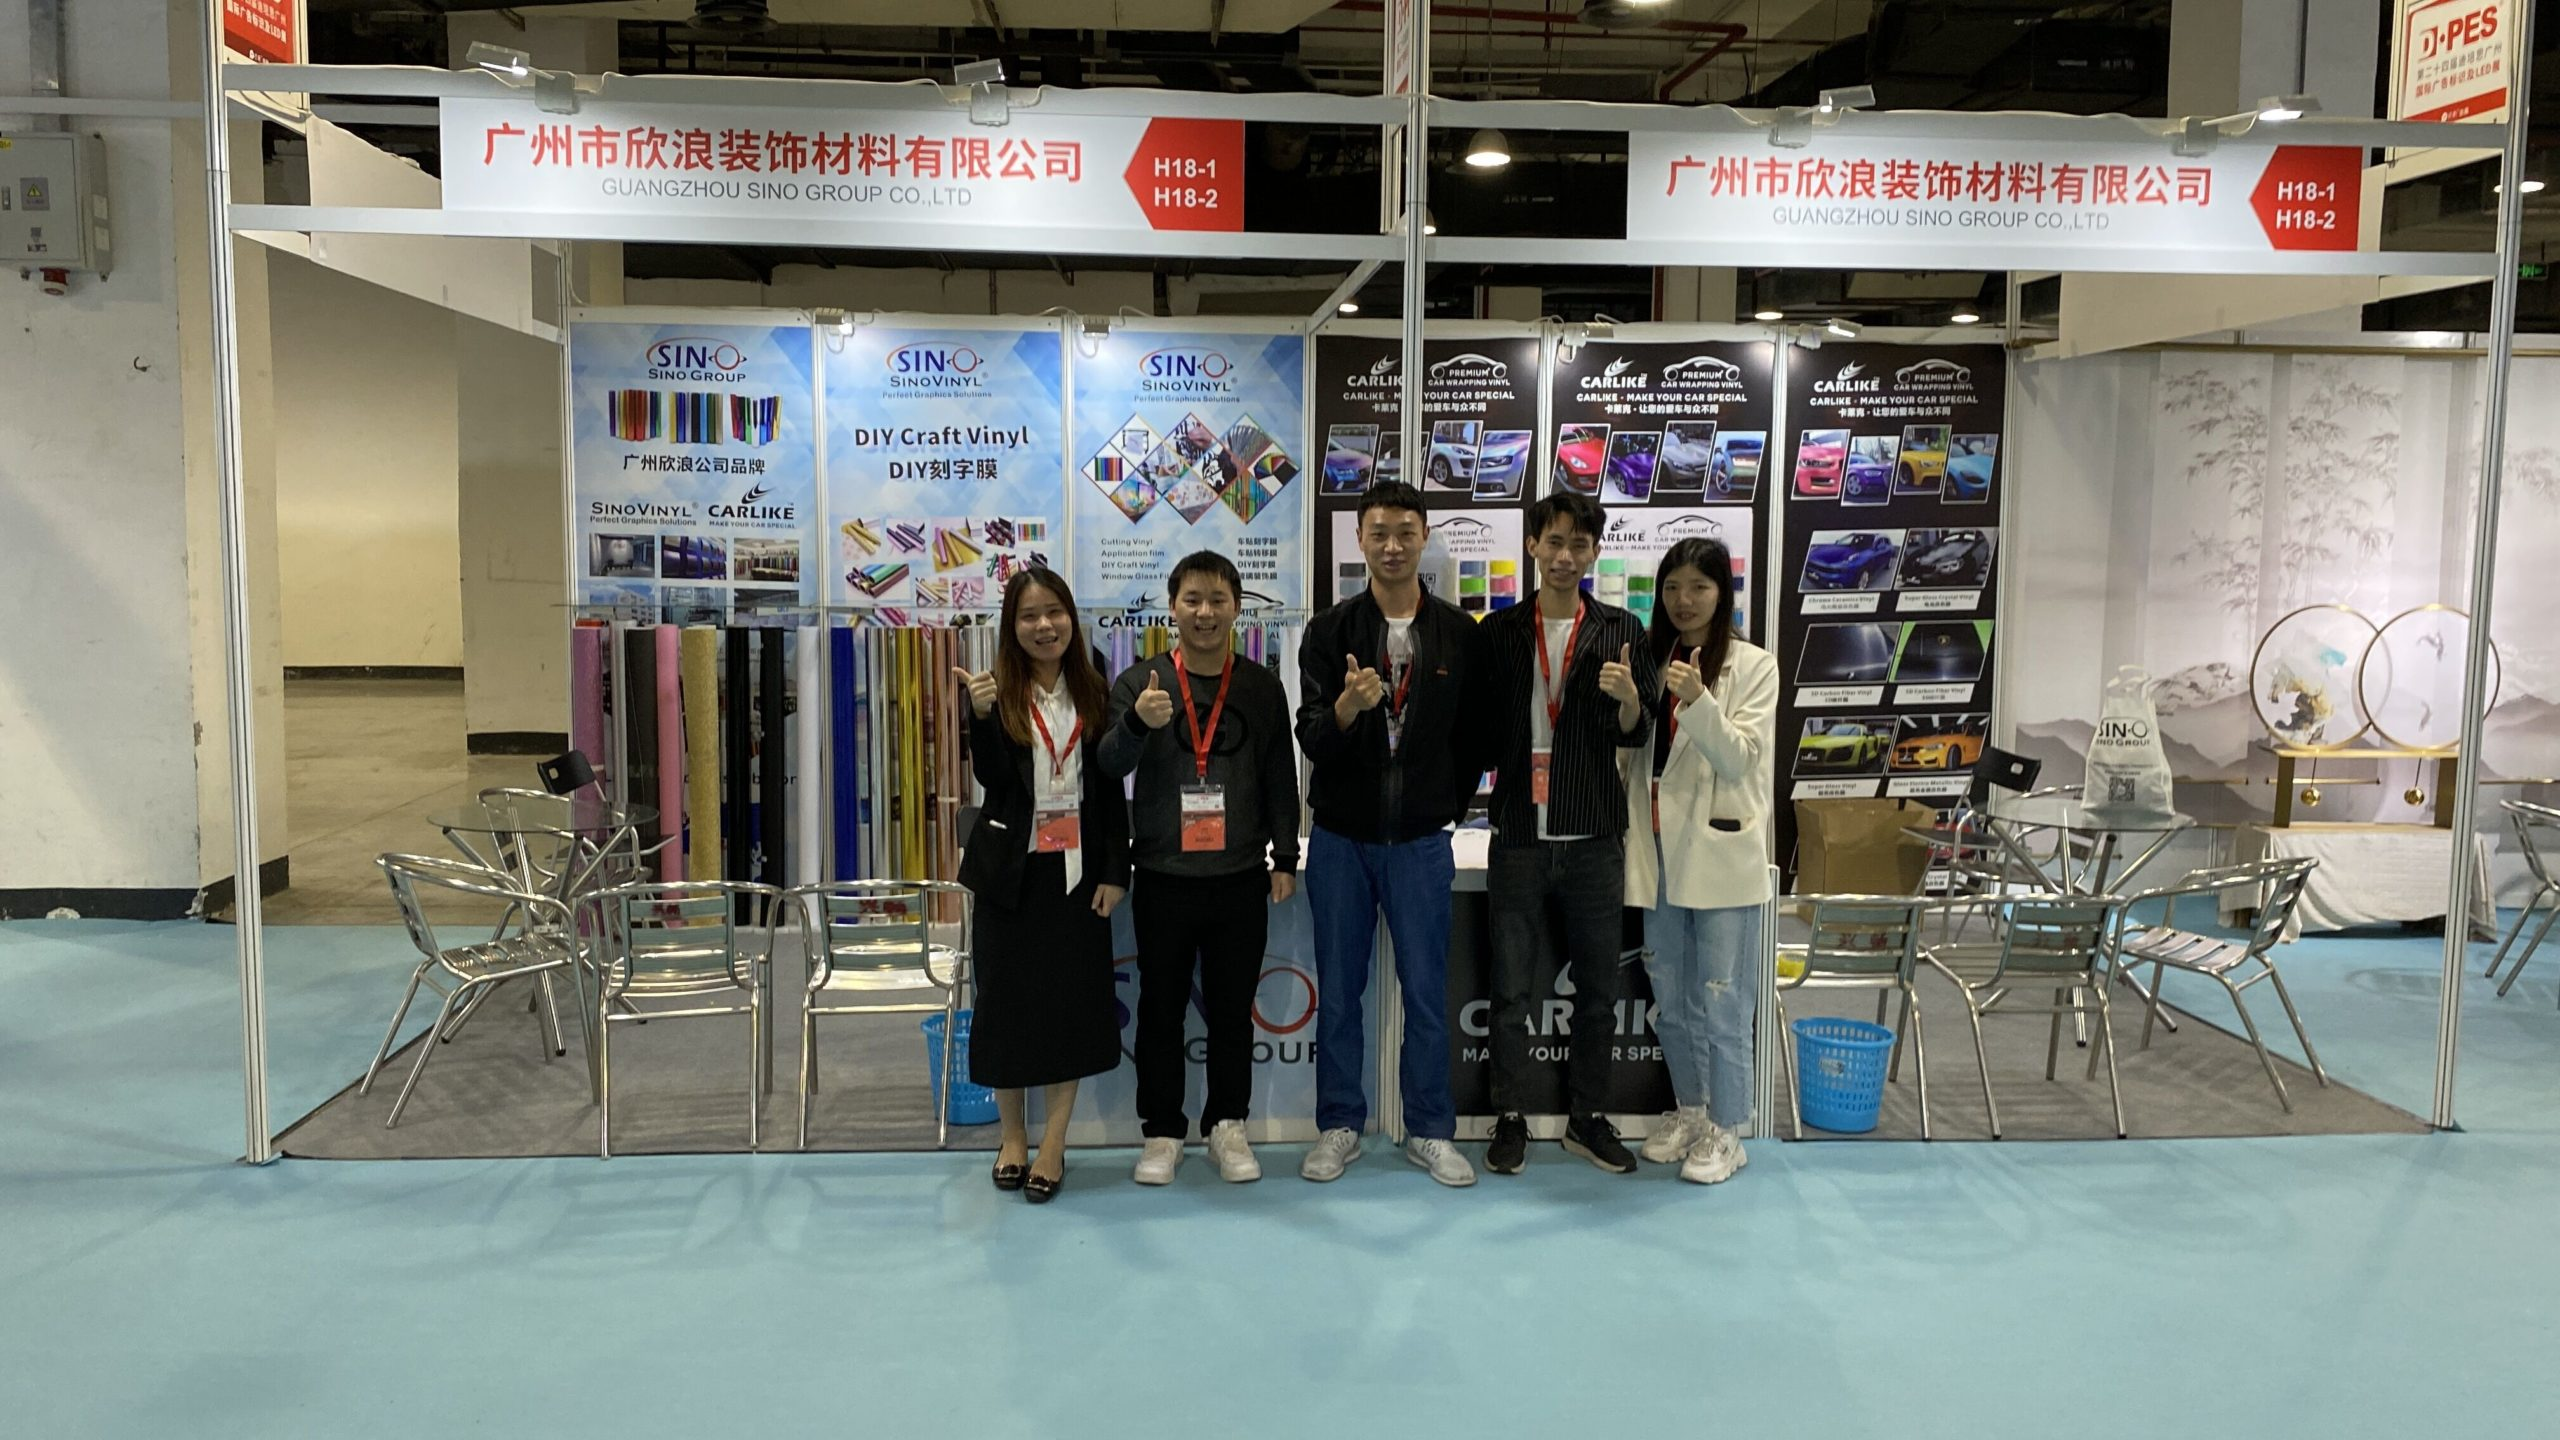 2021 DPES Sign Expo China Guangzhou Has Been Successfully Concluded